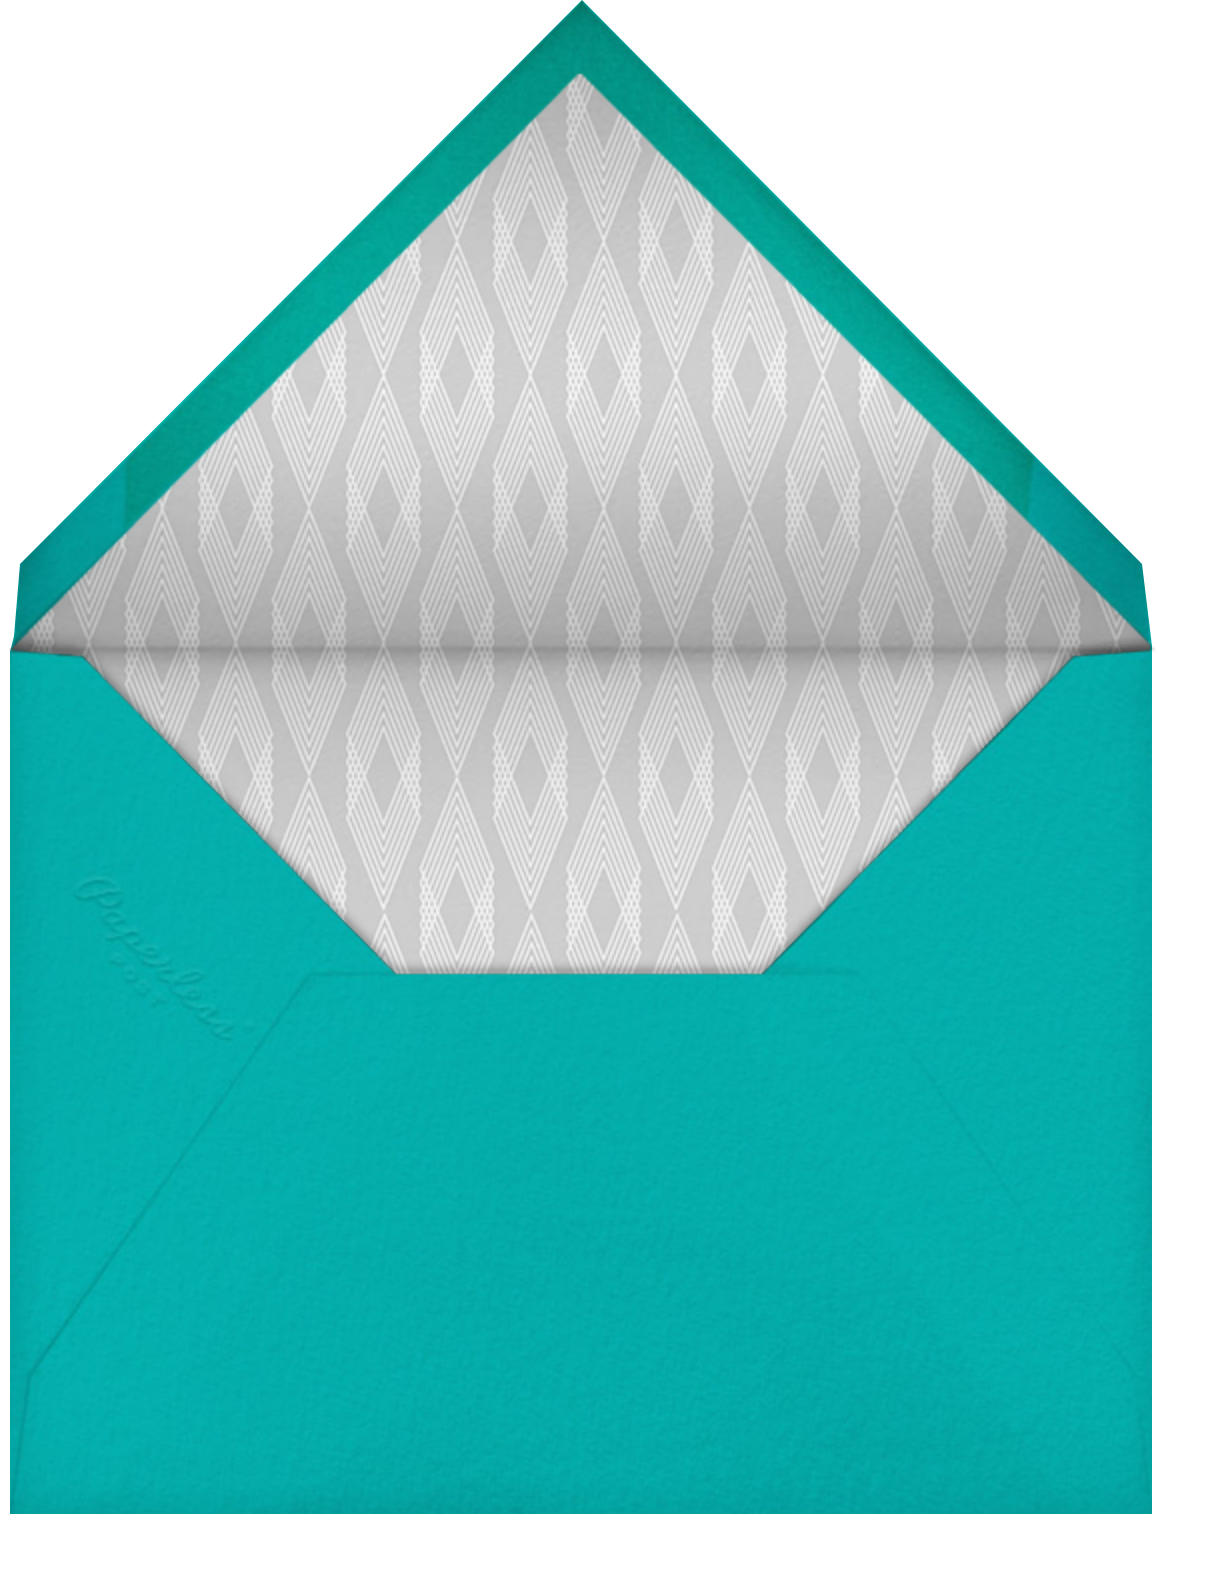 Persian Green (Square) - Paperless Post - Moving - envelope back